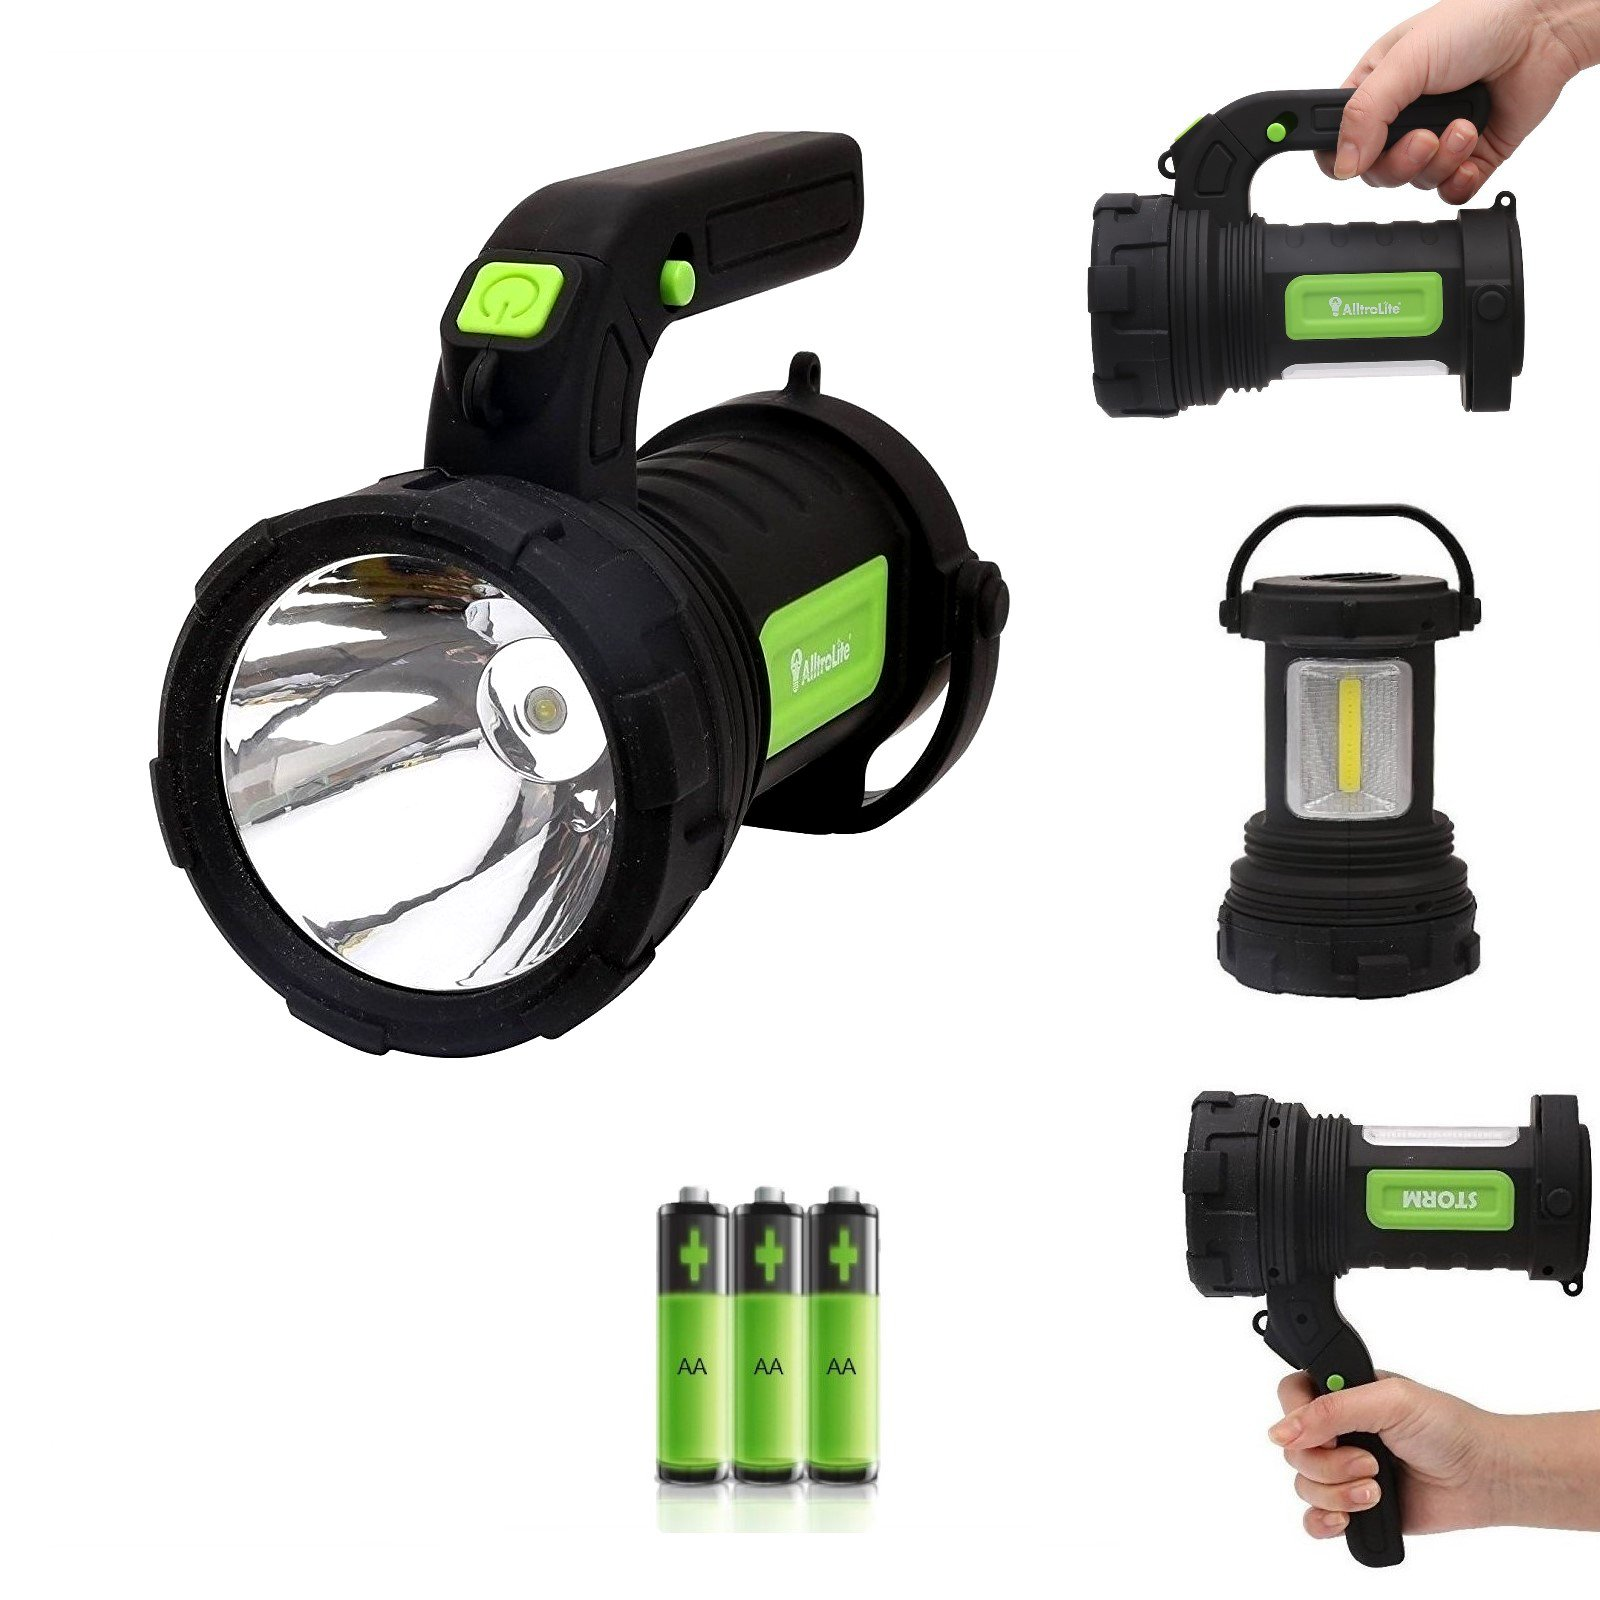 AlltroLite Storm LED Lantern - CREE LED & COB LED Spotlight, Multi-functional Camping Lantern, Waterproof LED Searchlight - Camping Lantern IP54 for Hiking, Emergencies, Hurricanes, Outages, Storms